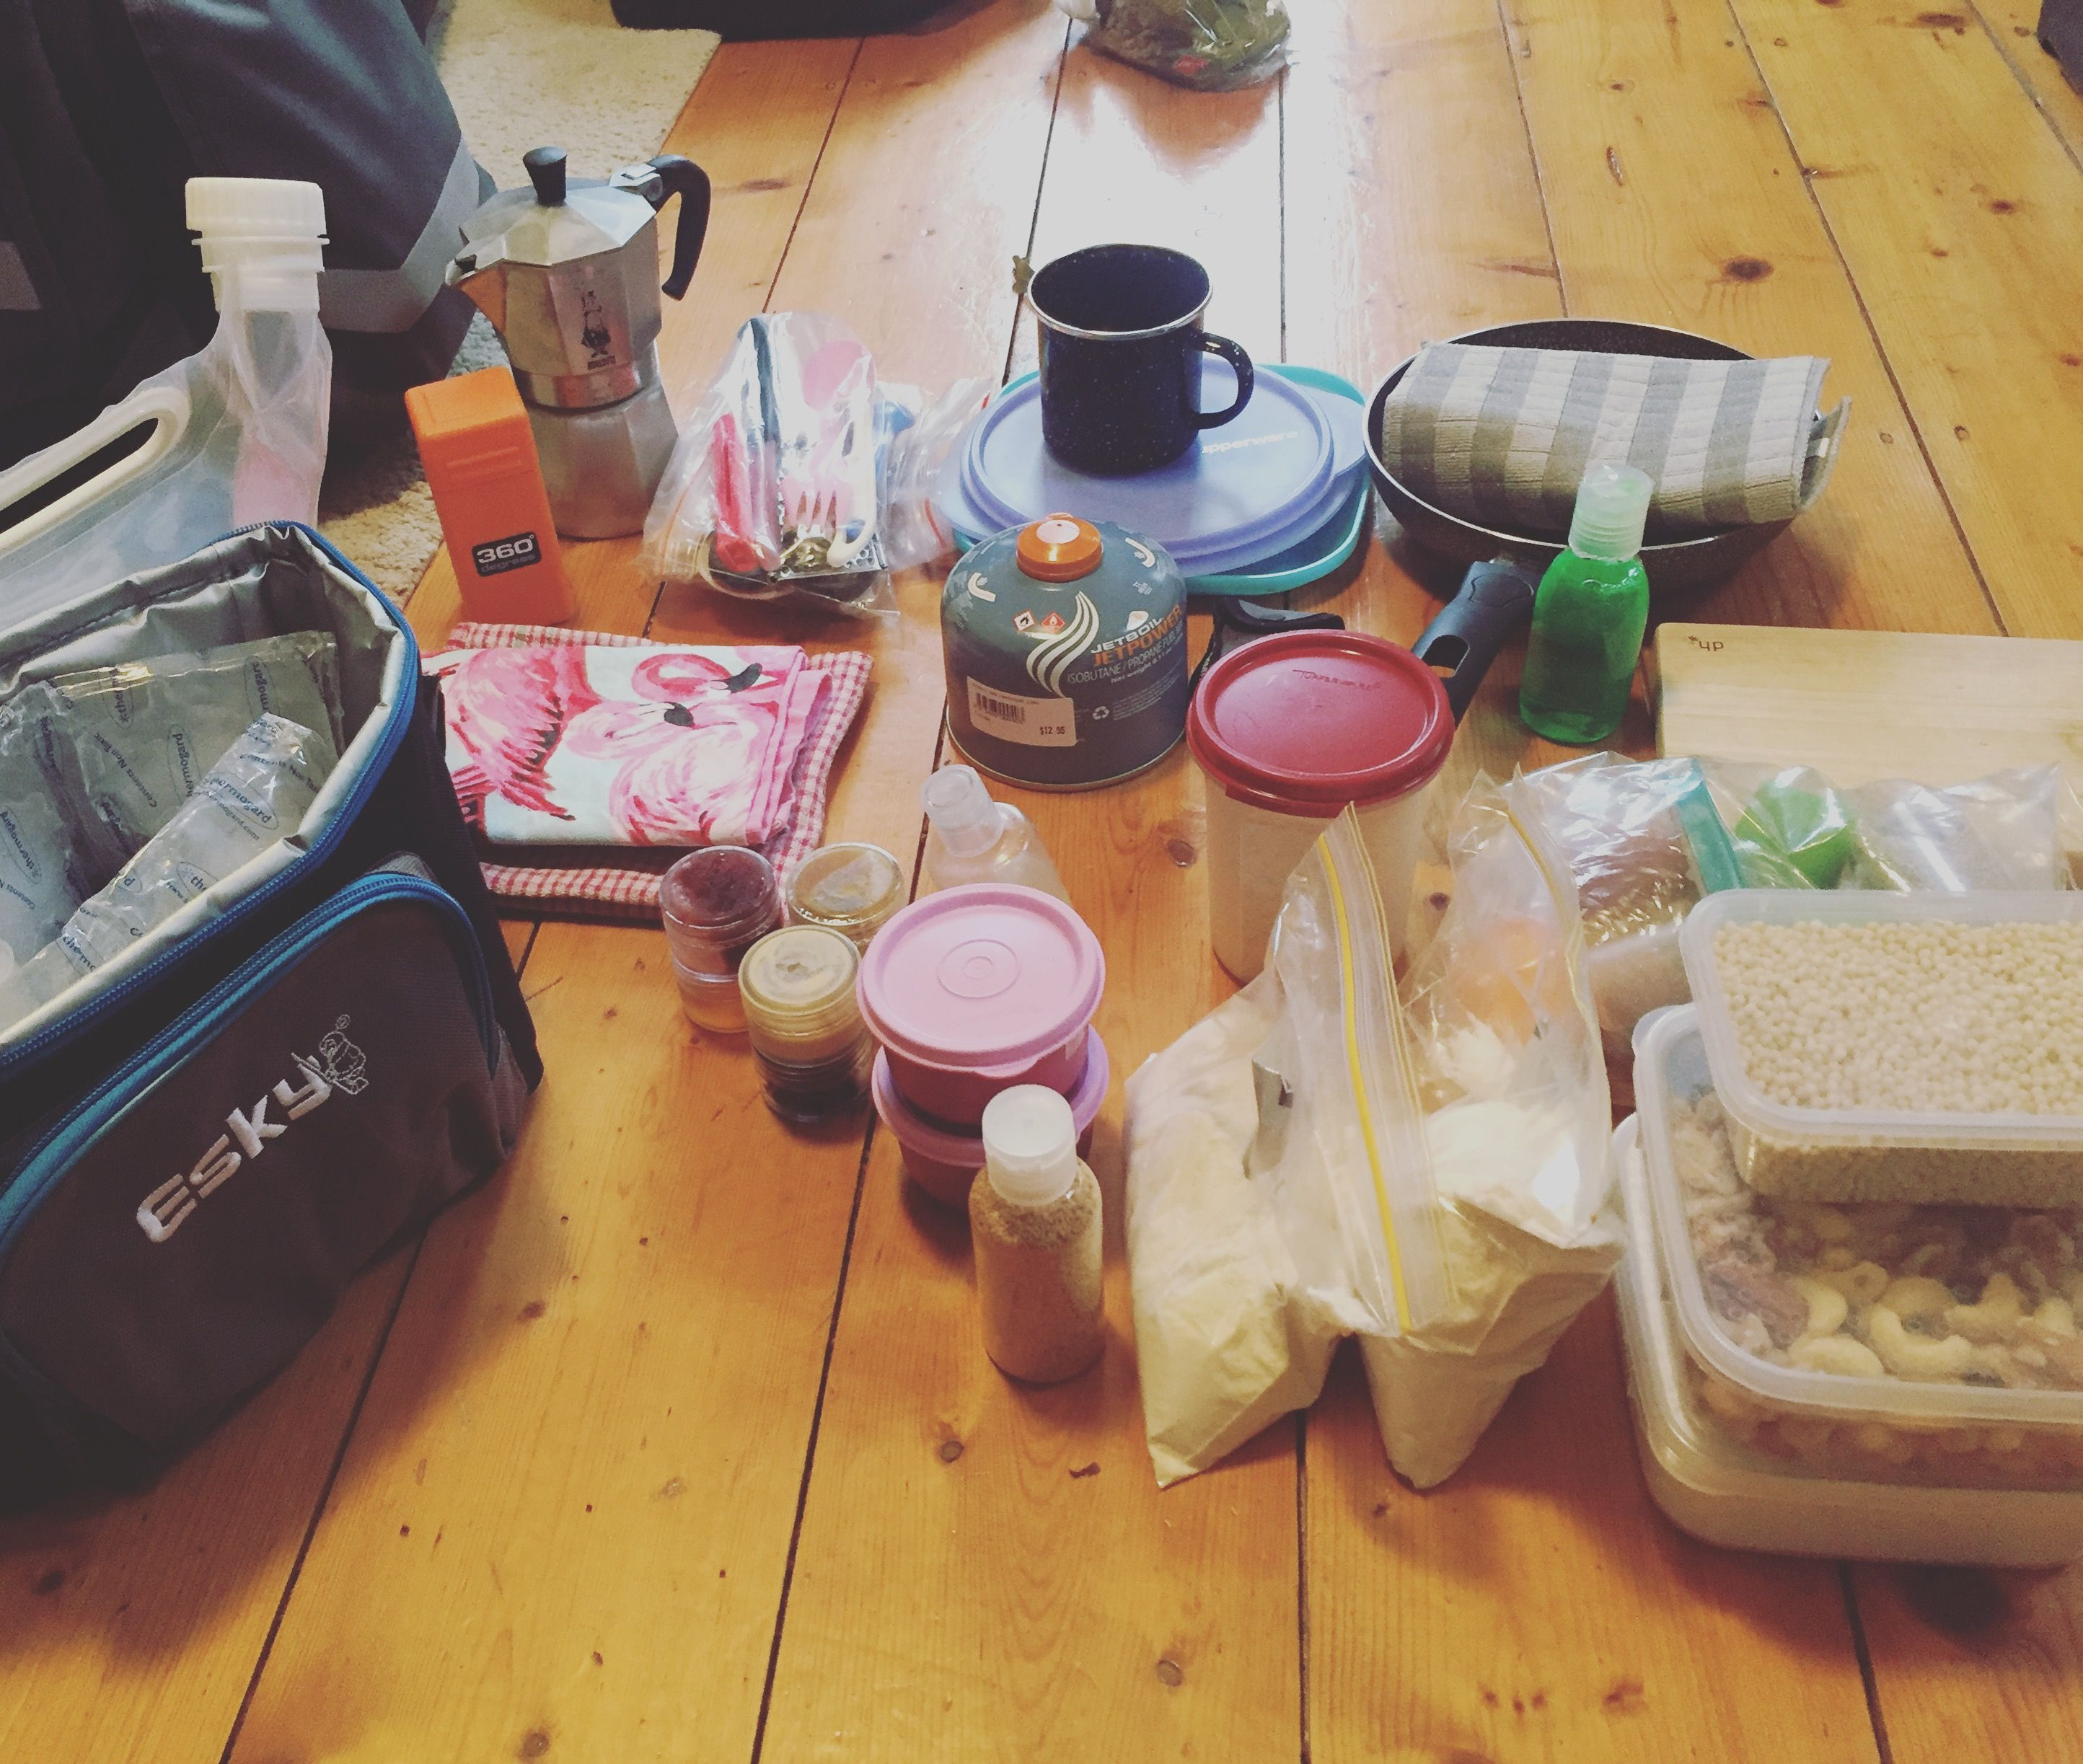 My Crazyladyadventure kitchen supplies. I cook most of my meals to stay healthy